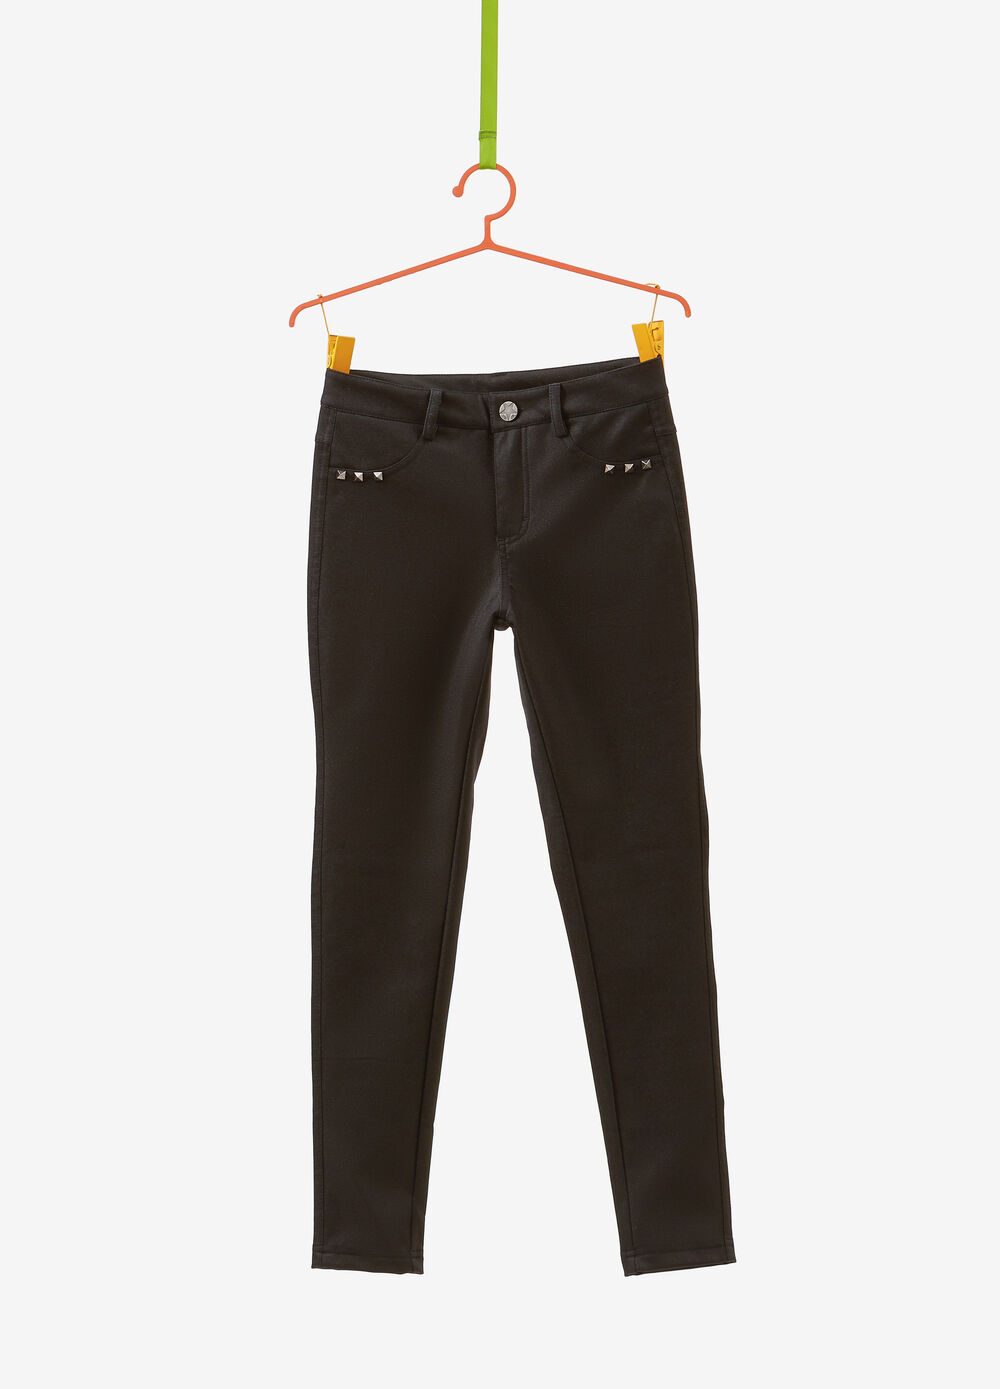 Solid colour stretch trousers with studs